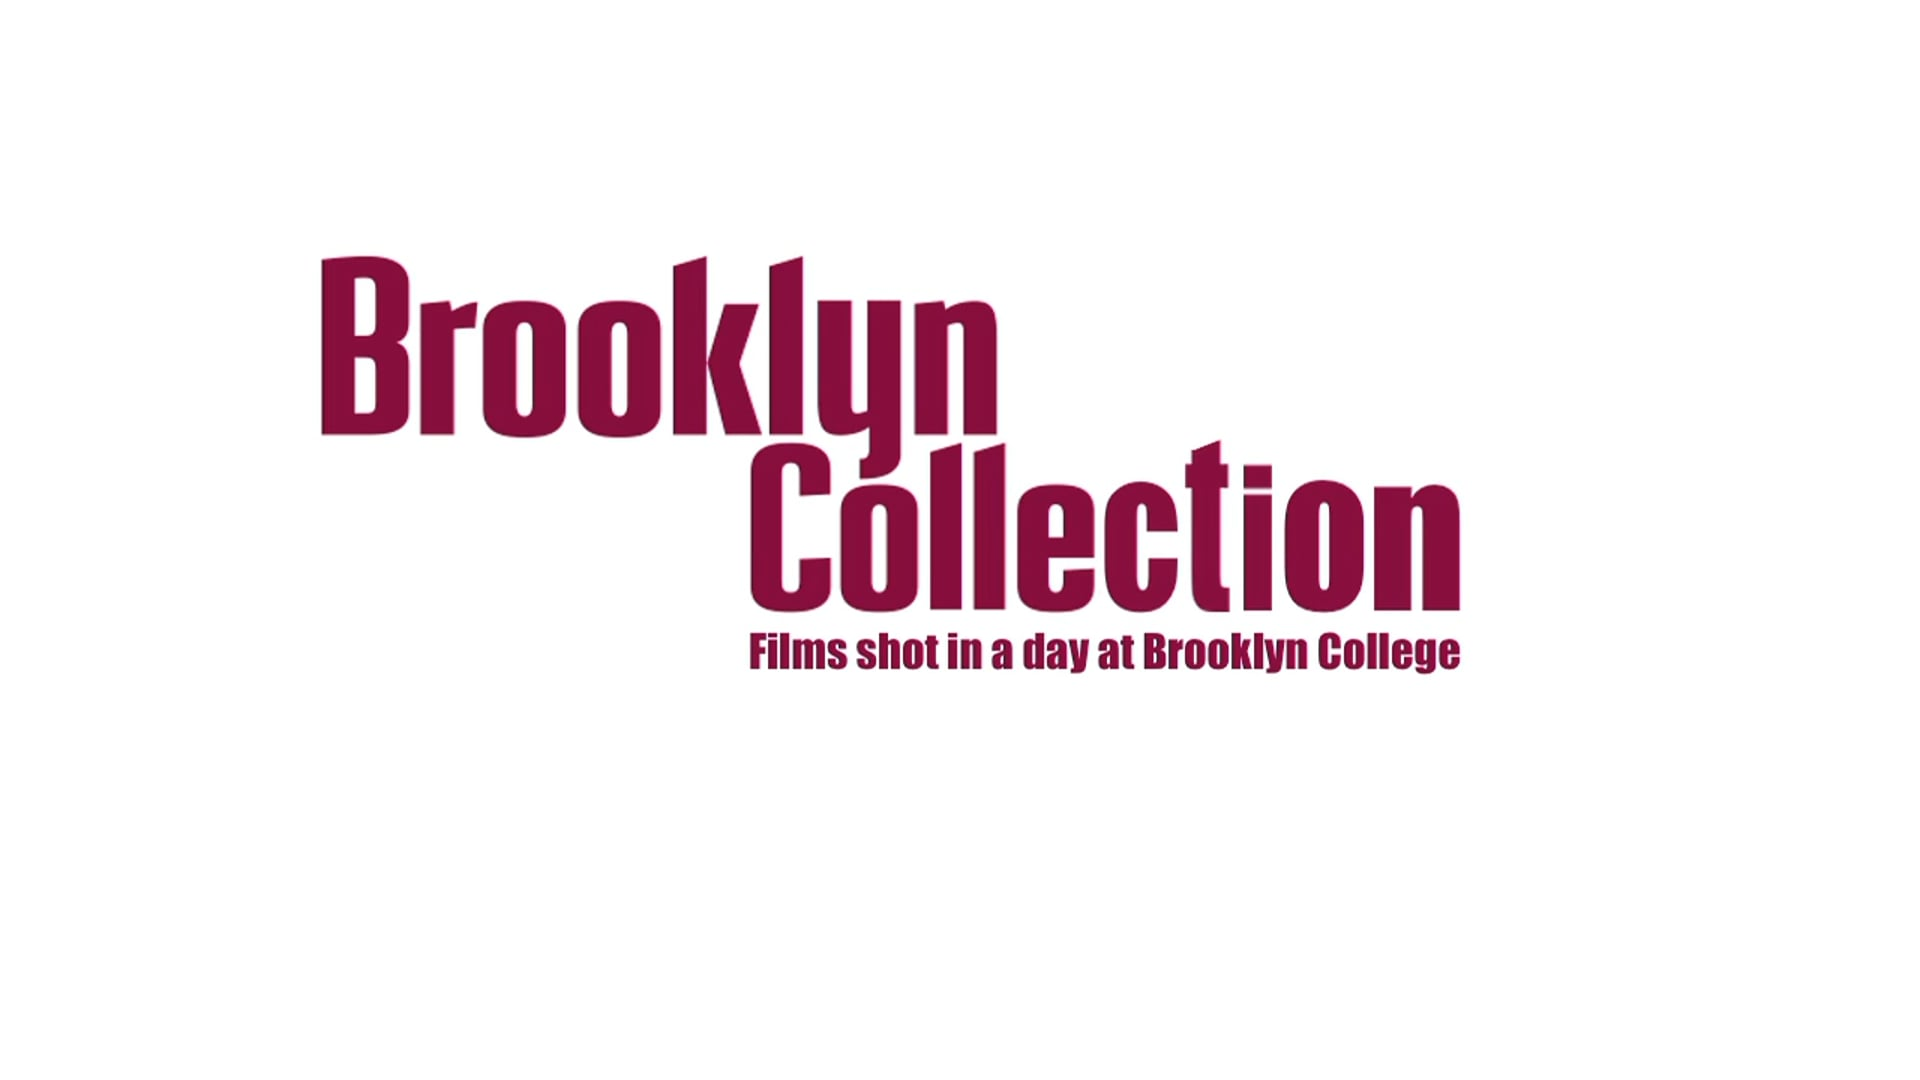 Brooklyn collection